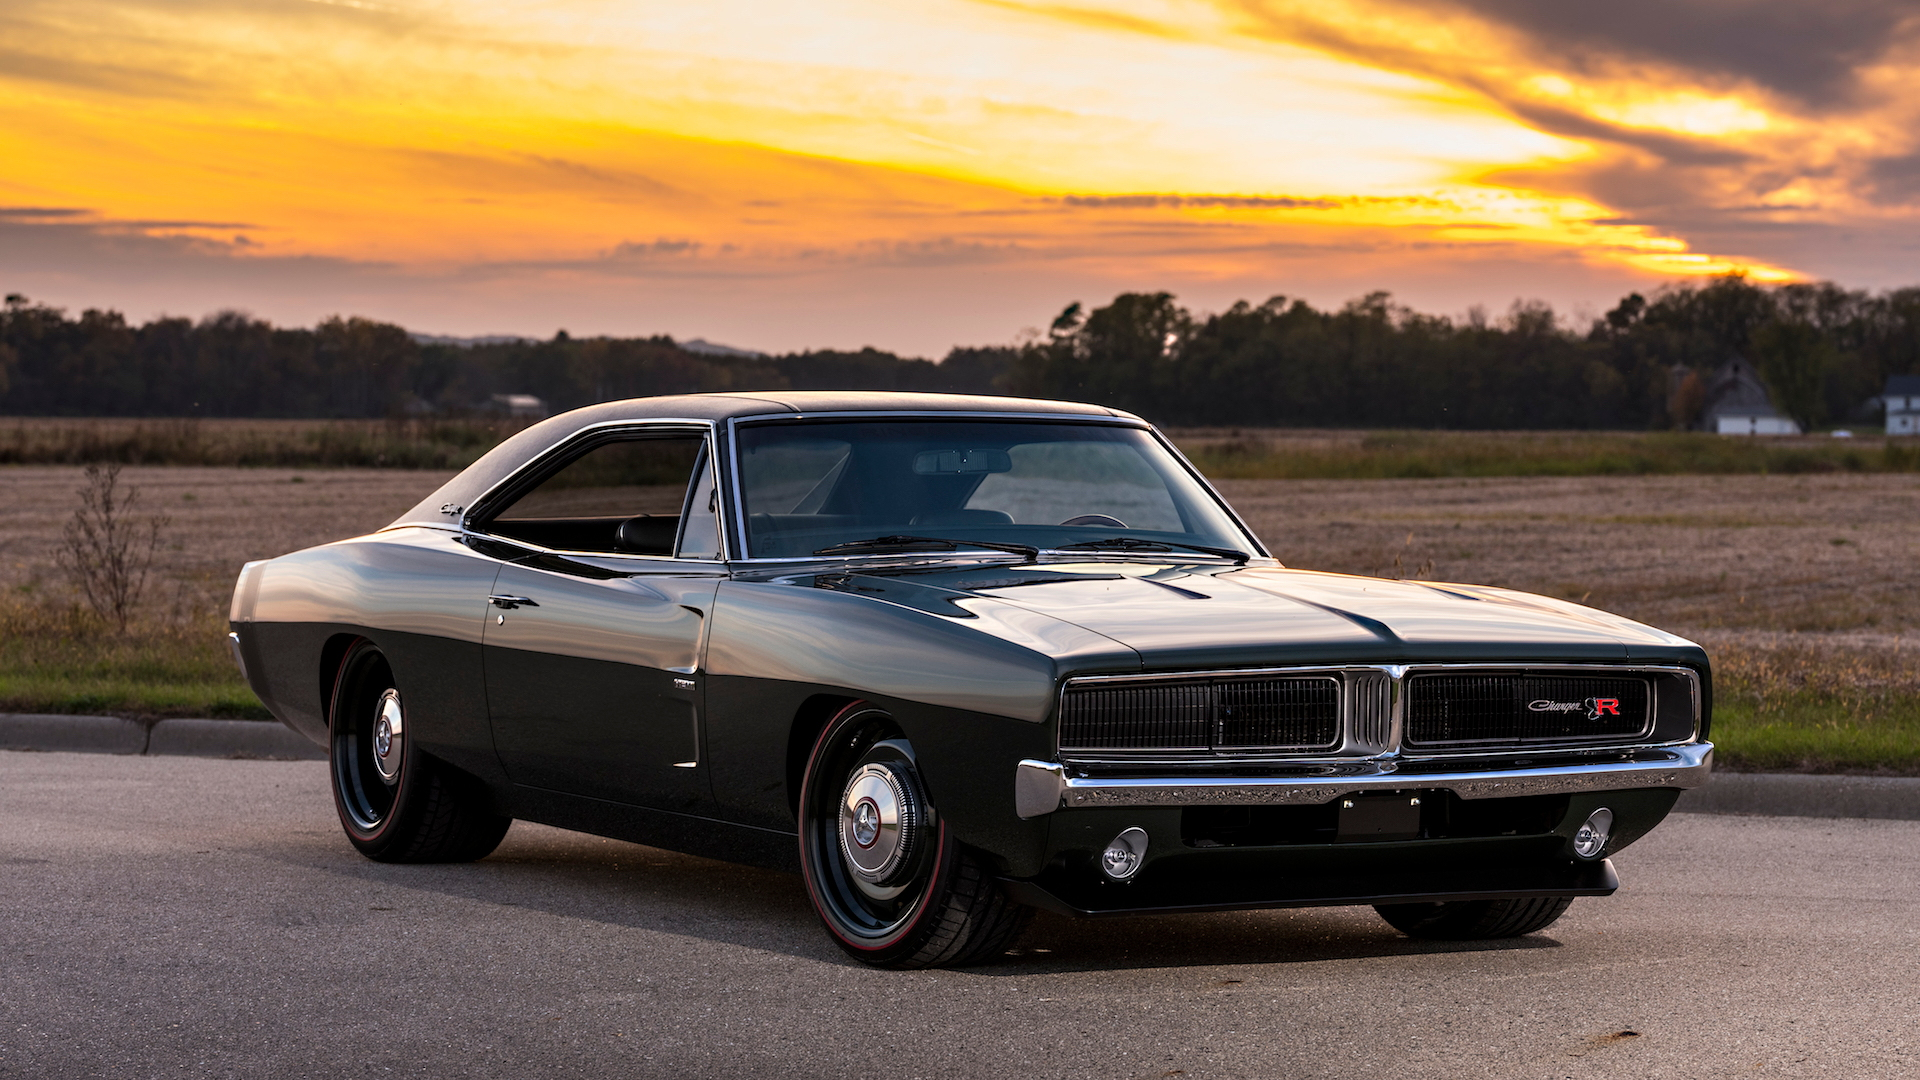 Dodge Charger News Breaking News Photos Videos Motor Authority